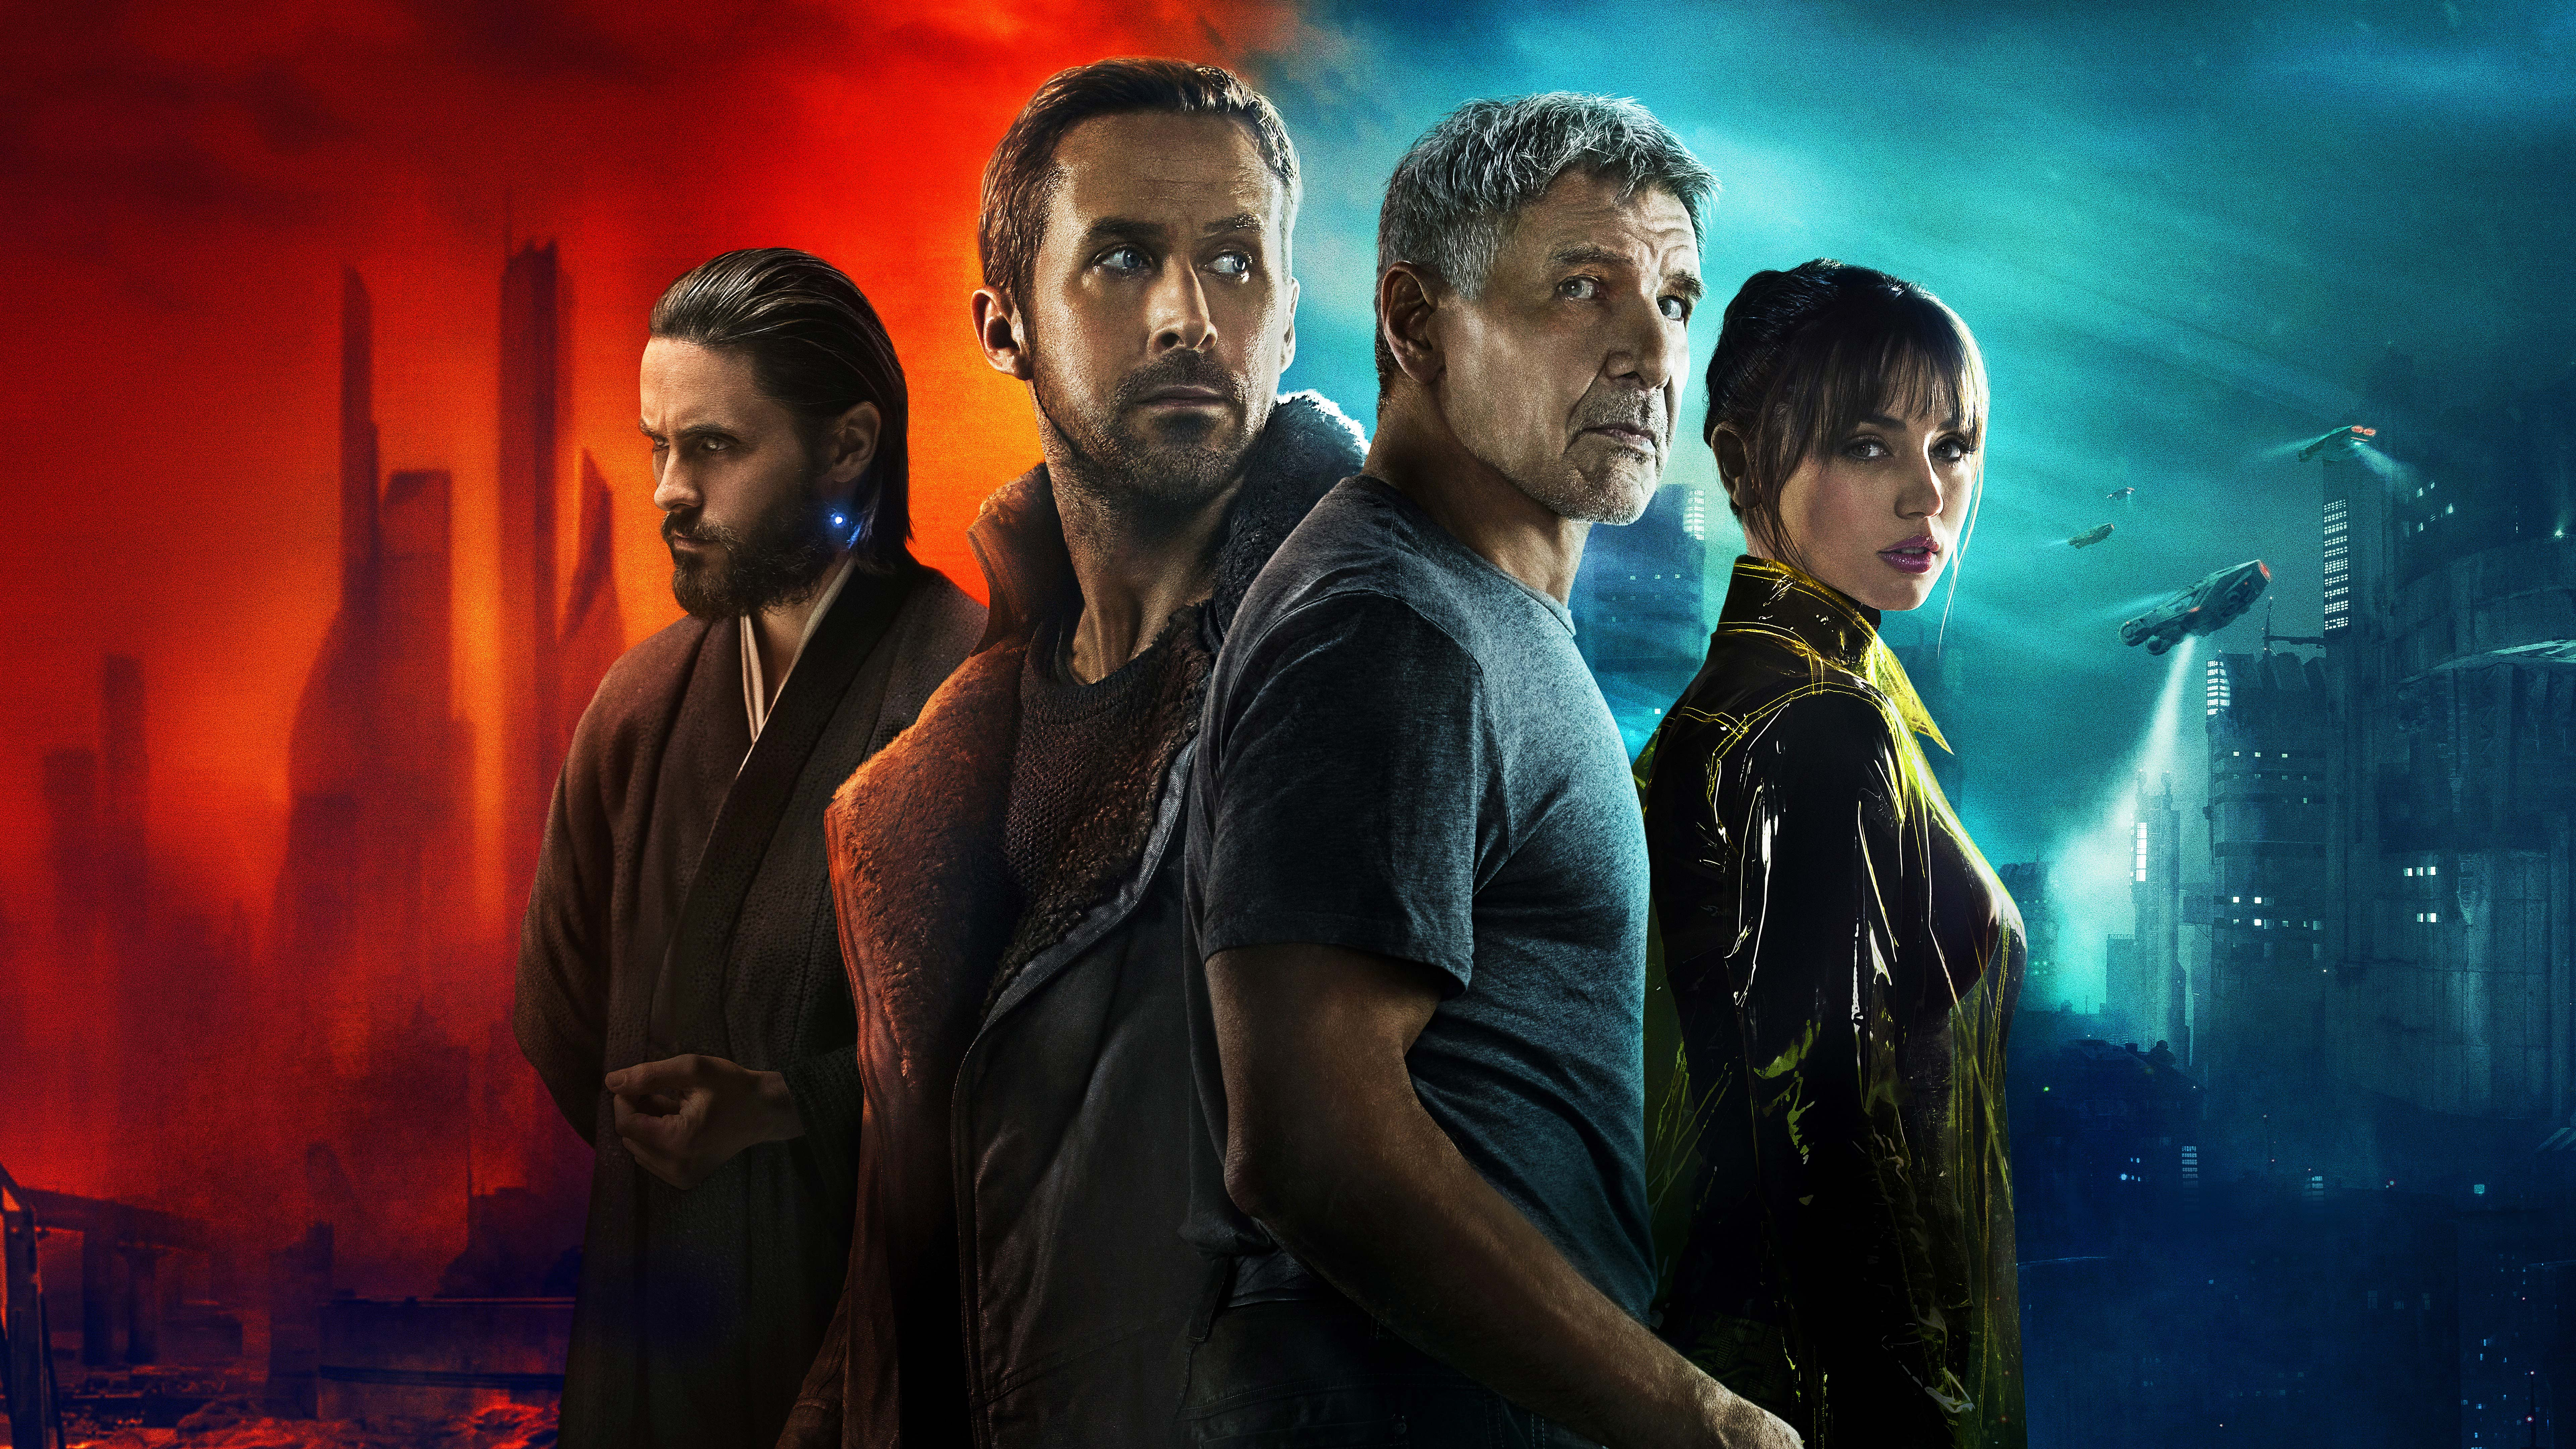 7680x4320 Blade Runner 2049 8k, HD Movies, 4k Wallpapers, Images ...